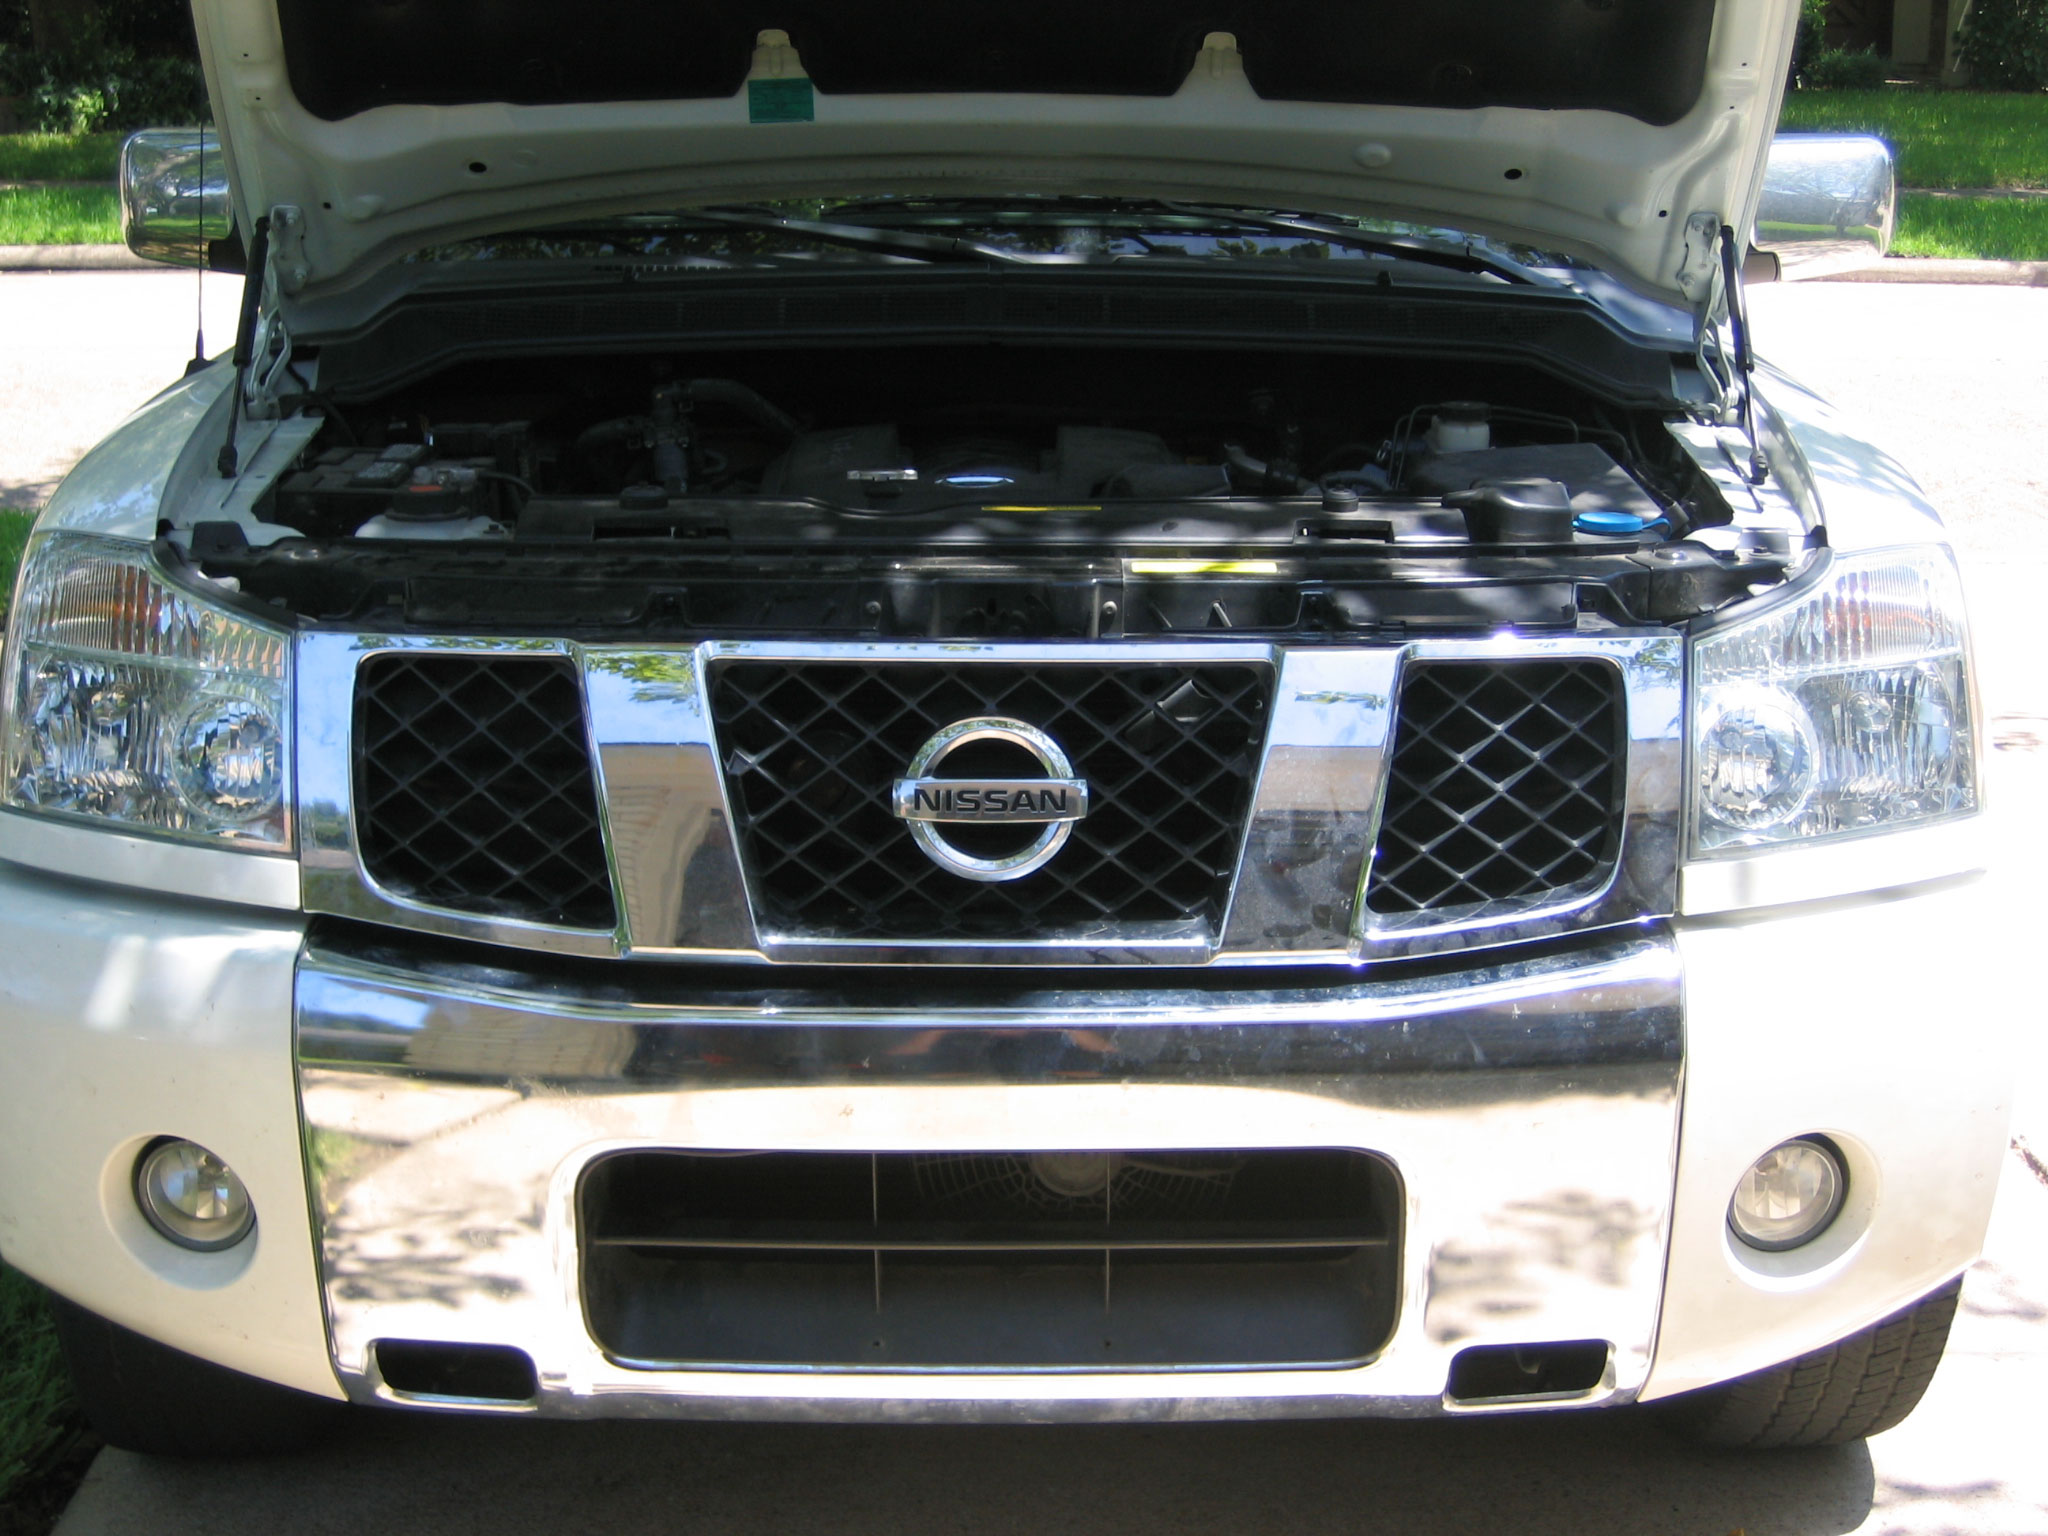 Nissan Titan Bumper Removed Related Keywords & Suggestions